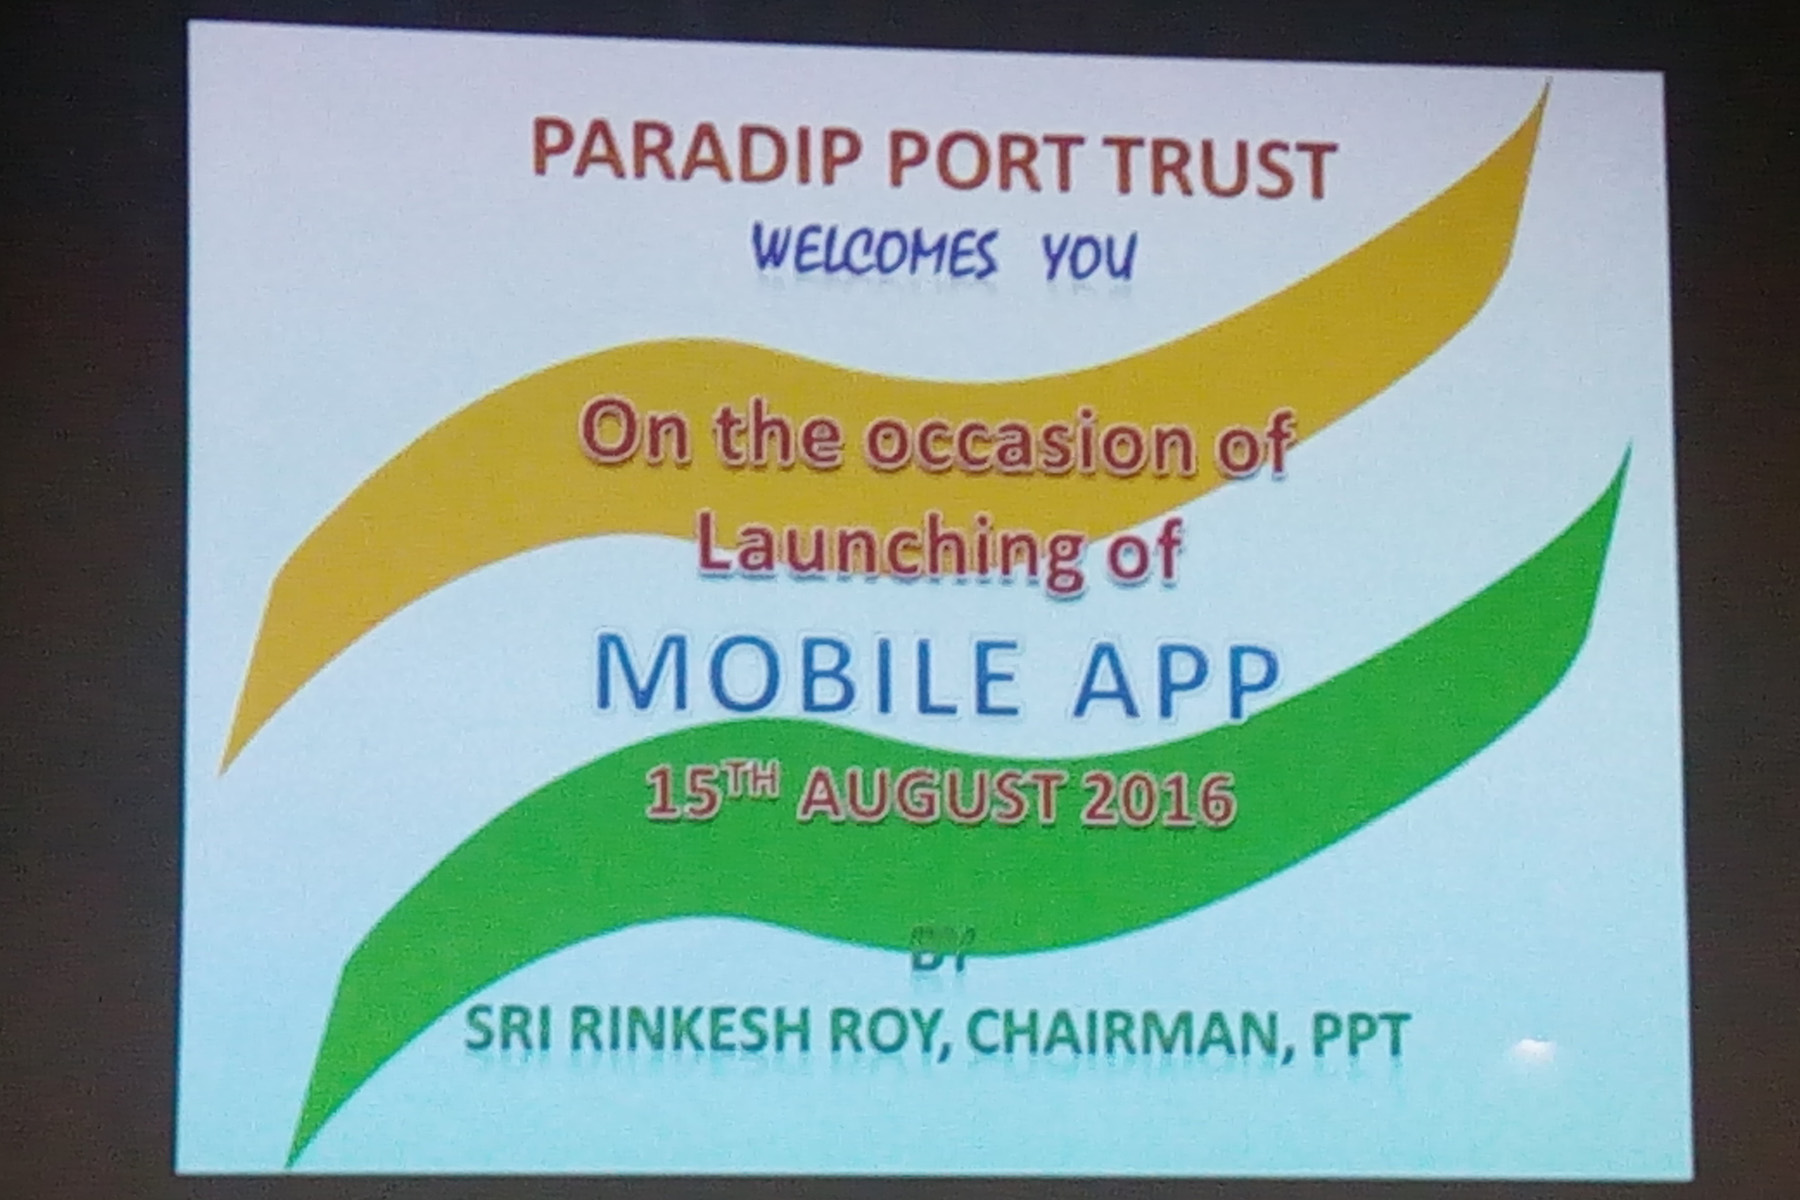 Mobile App Inauguration on 15th Aug 2016